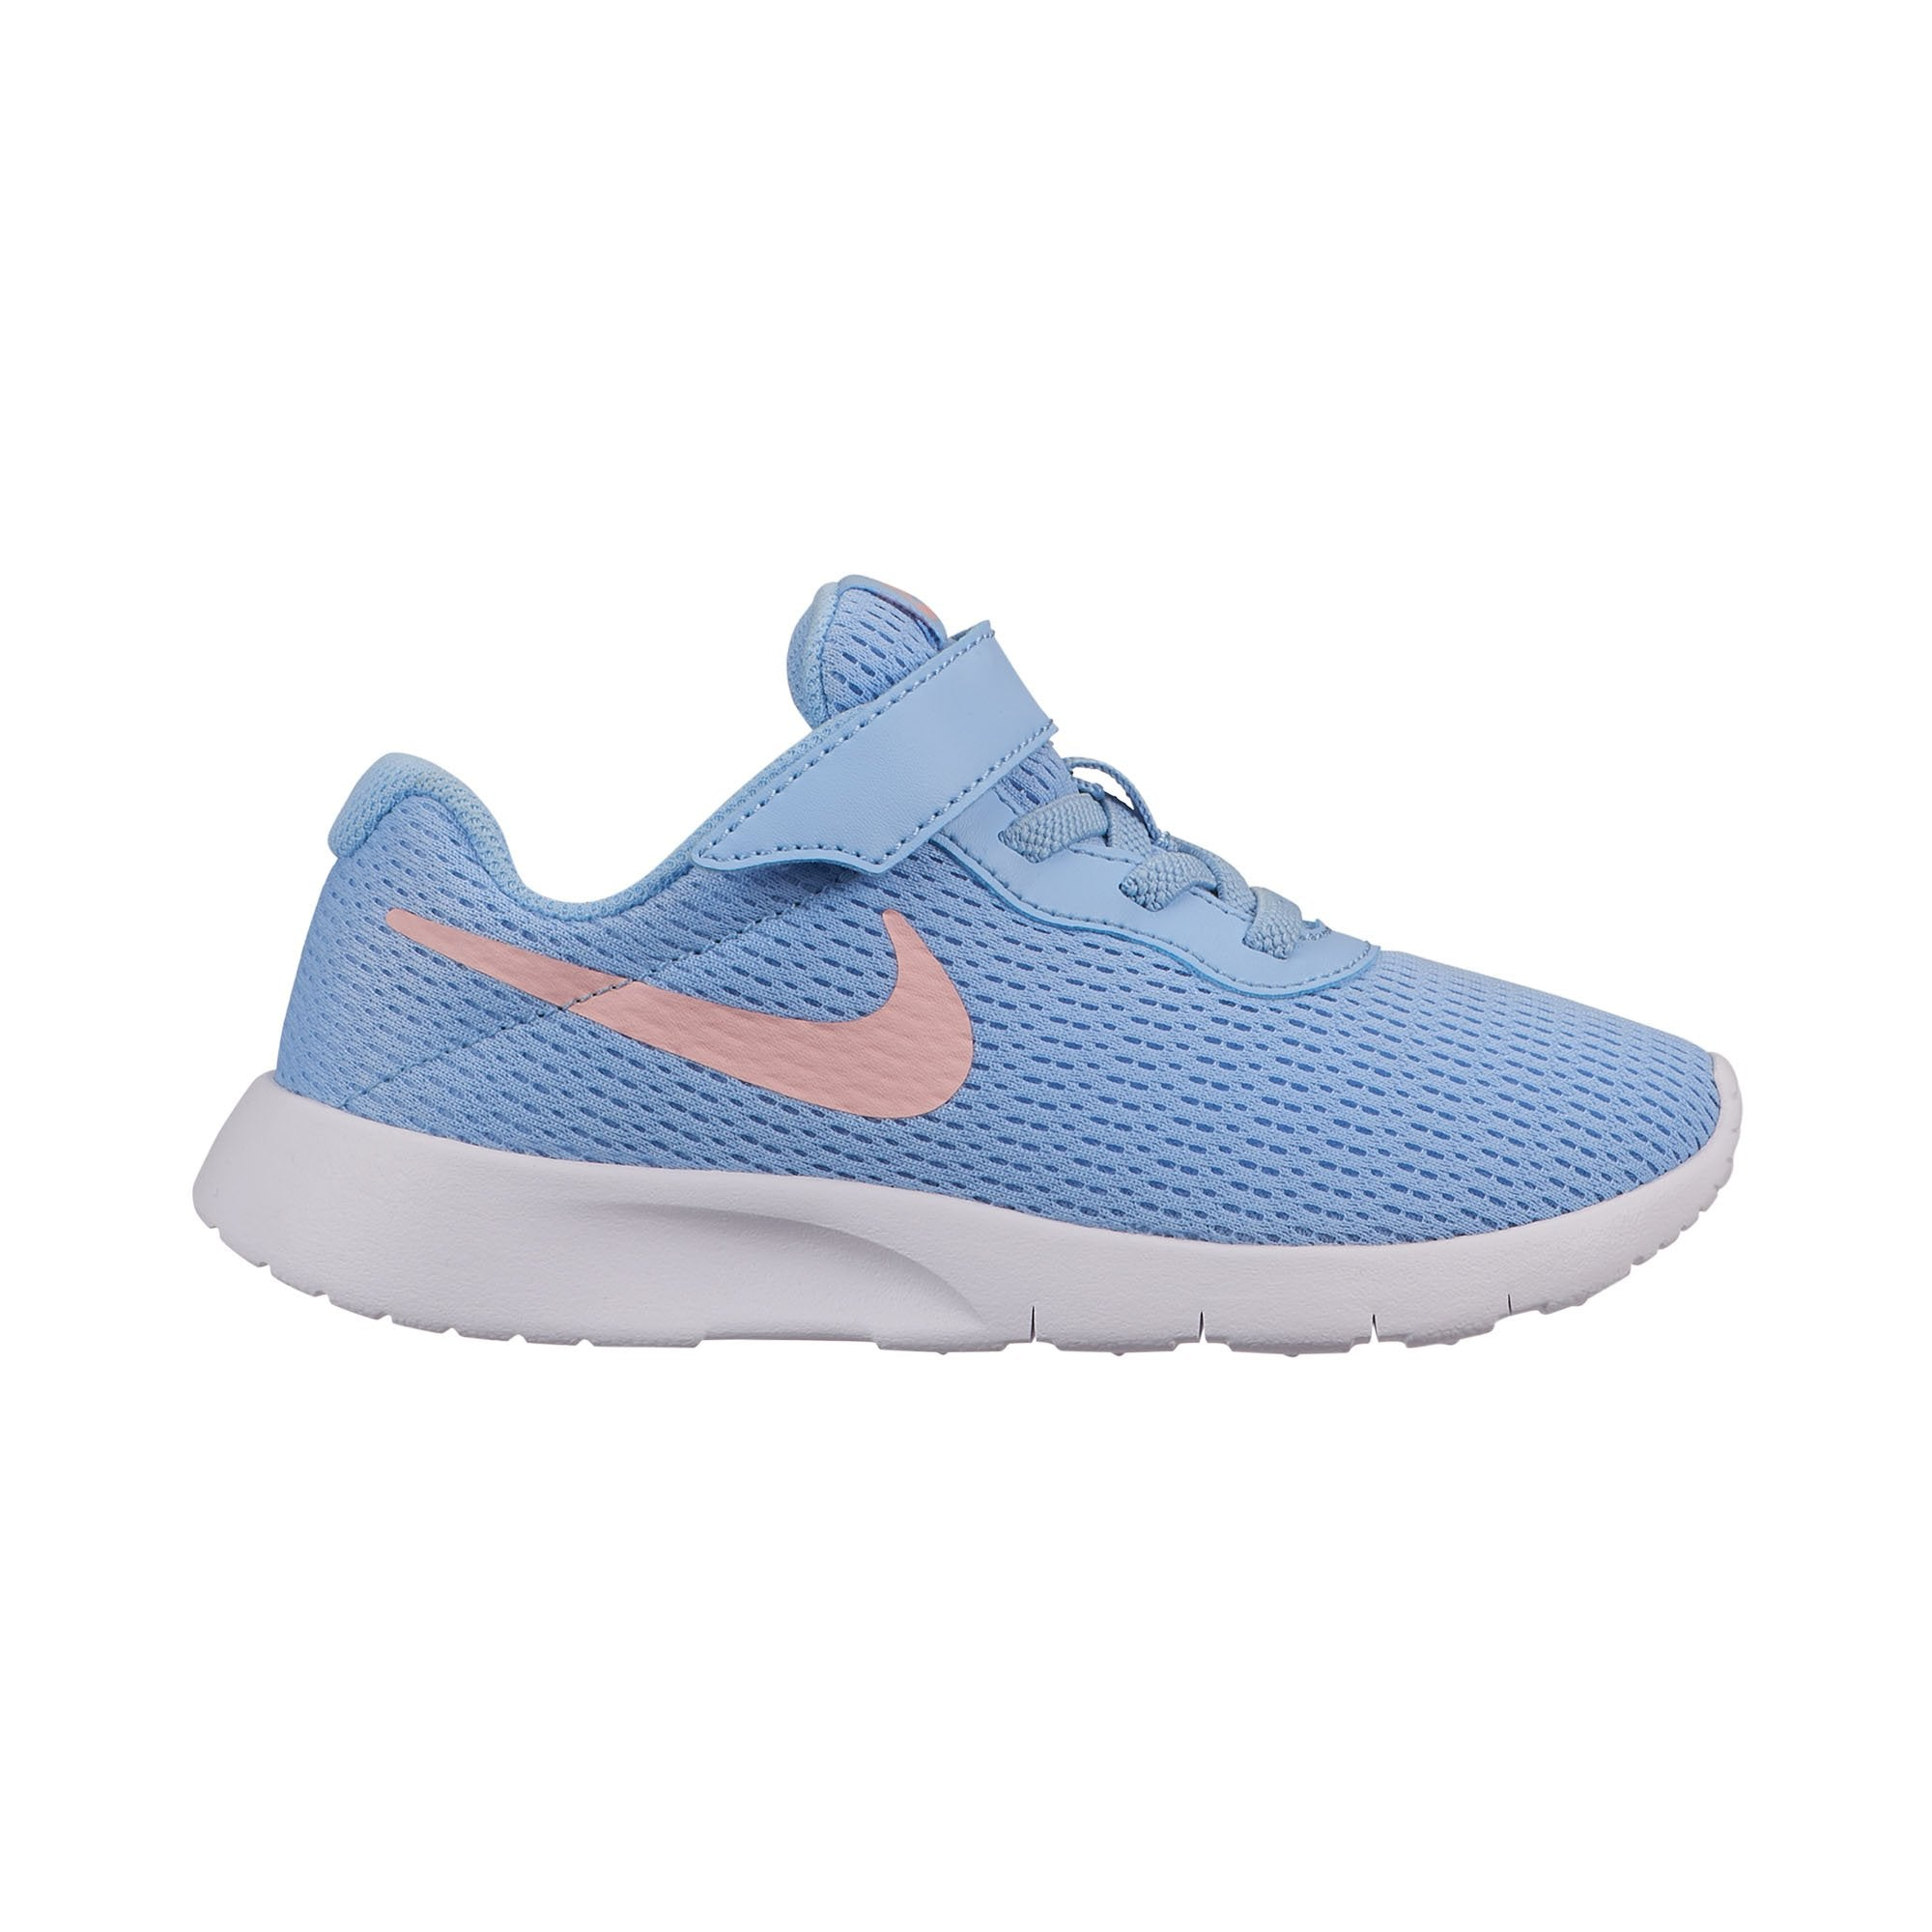 9254a6967b53 Buy Nike Kids Tanjun Pre-School Shoes